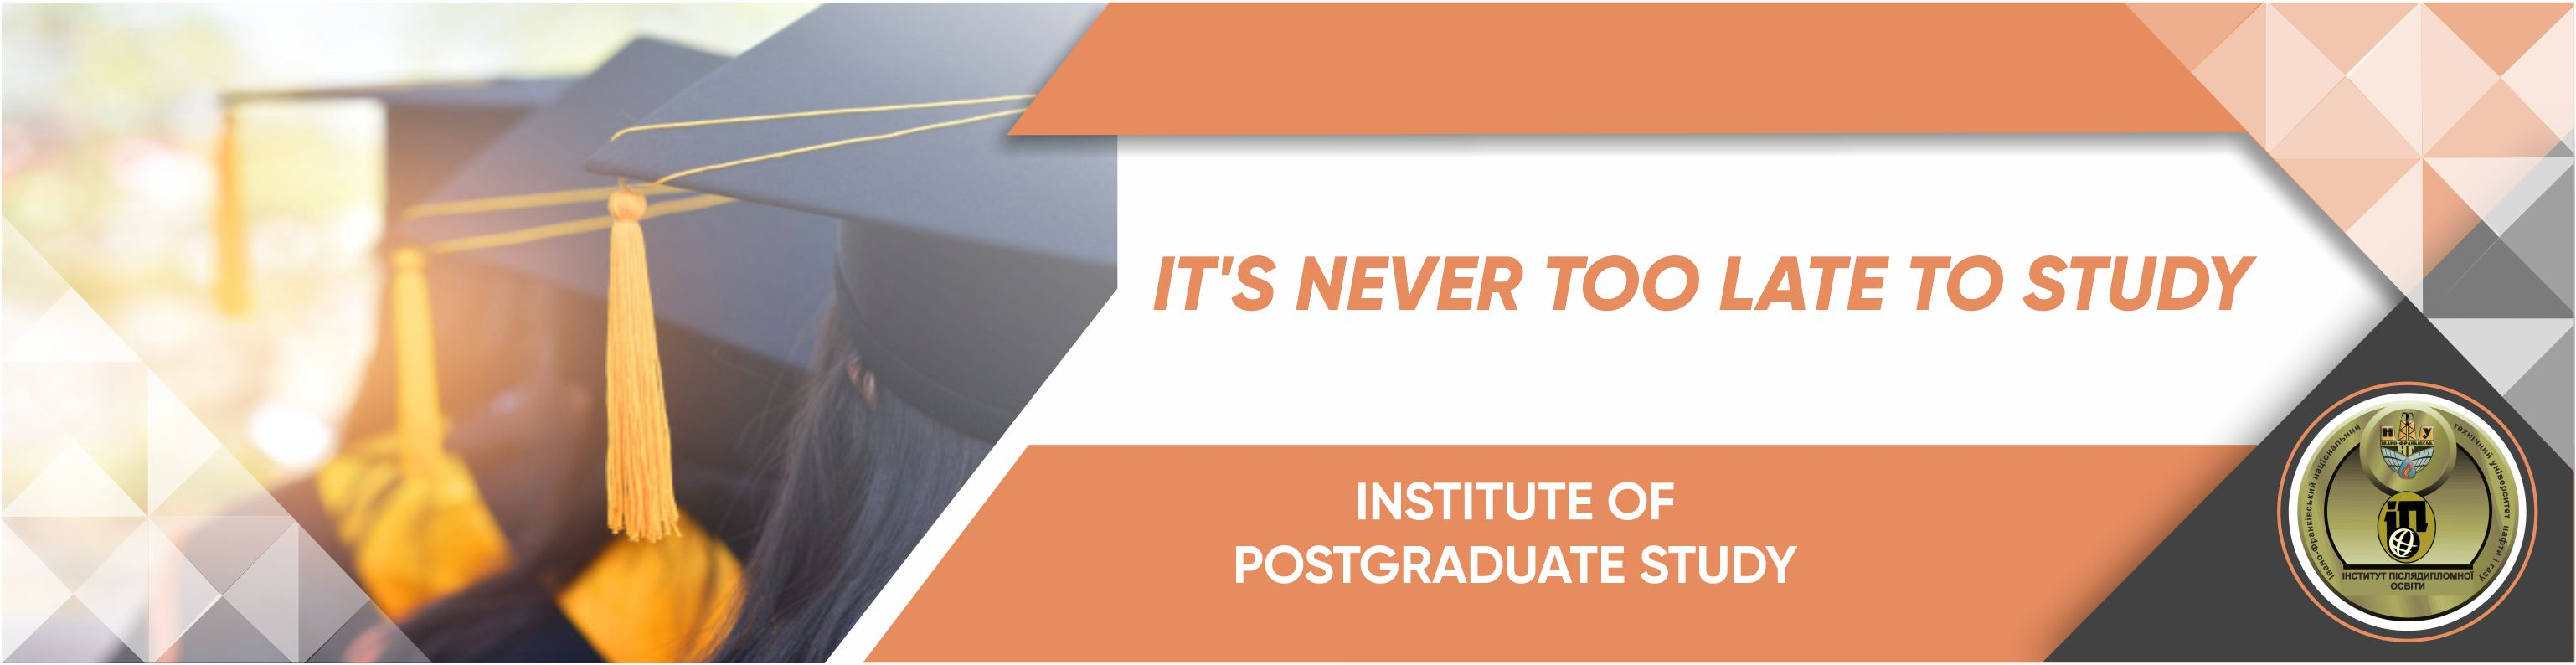 Institute of Postgraduate Study